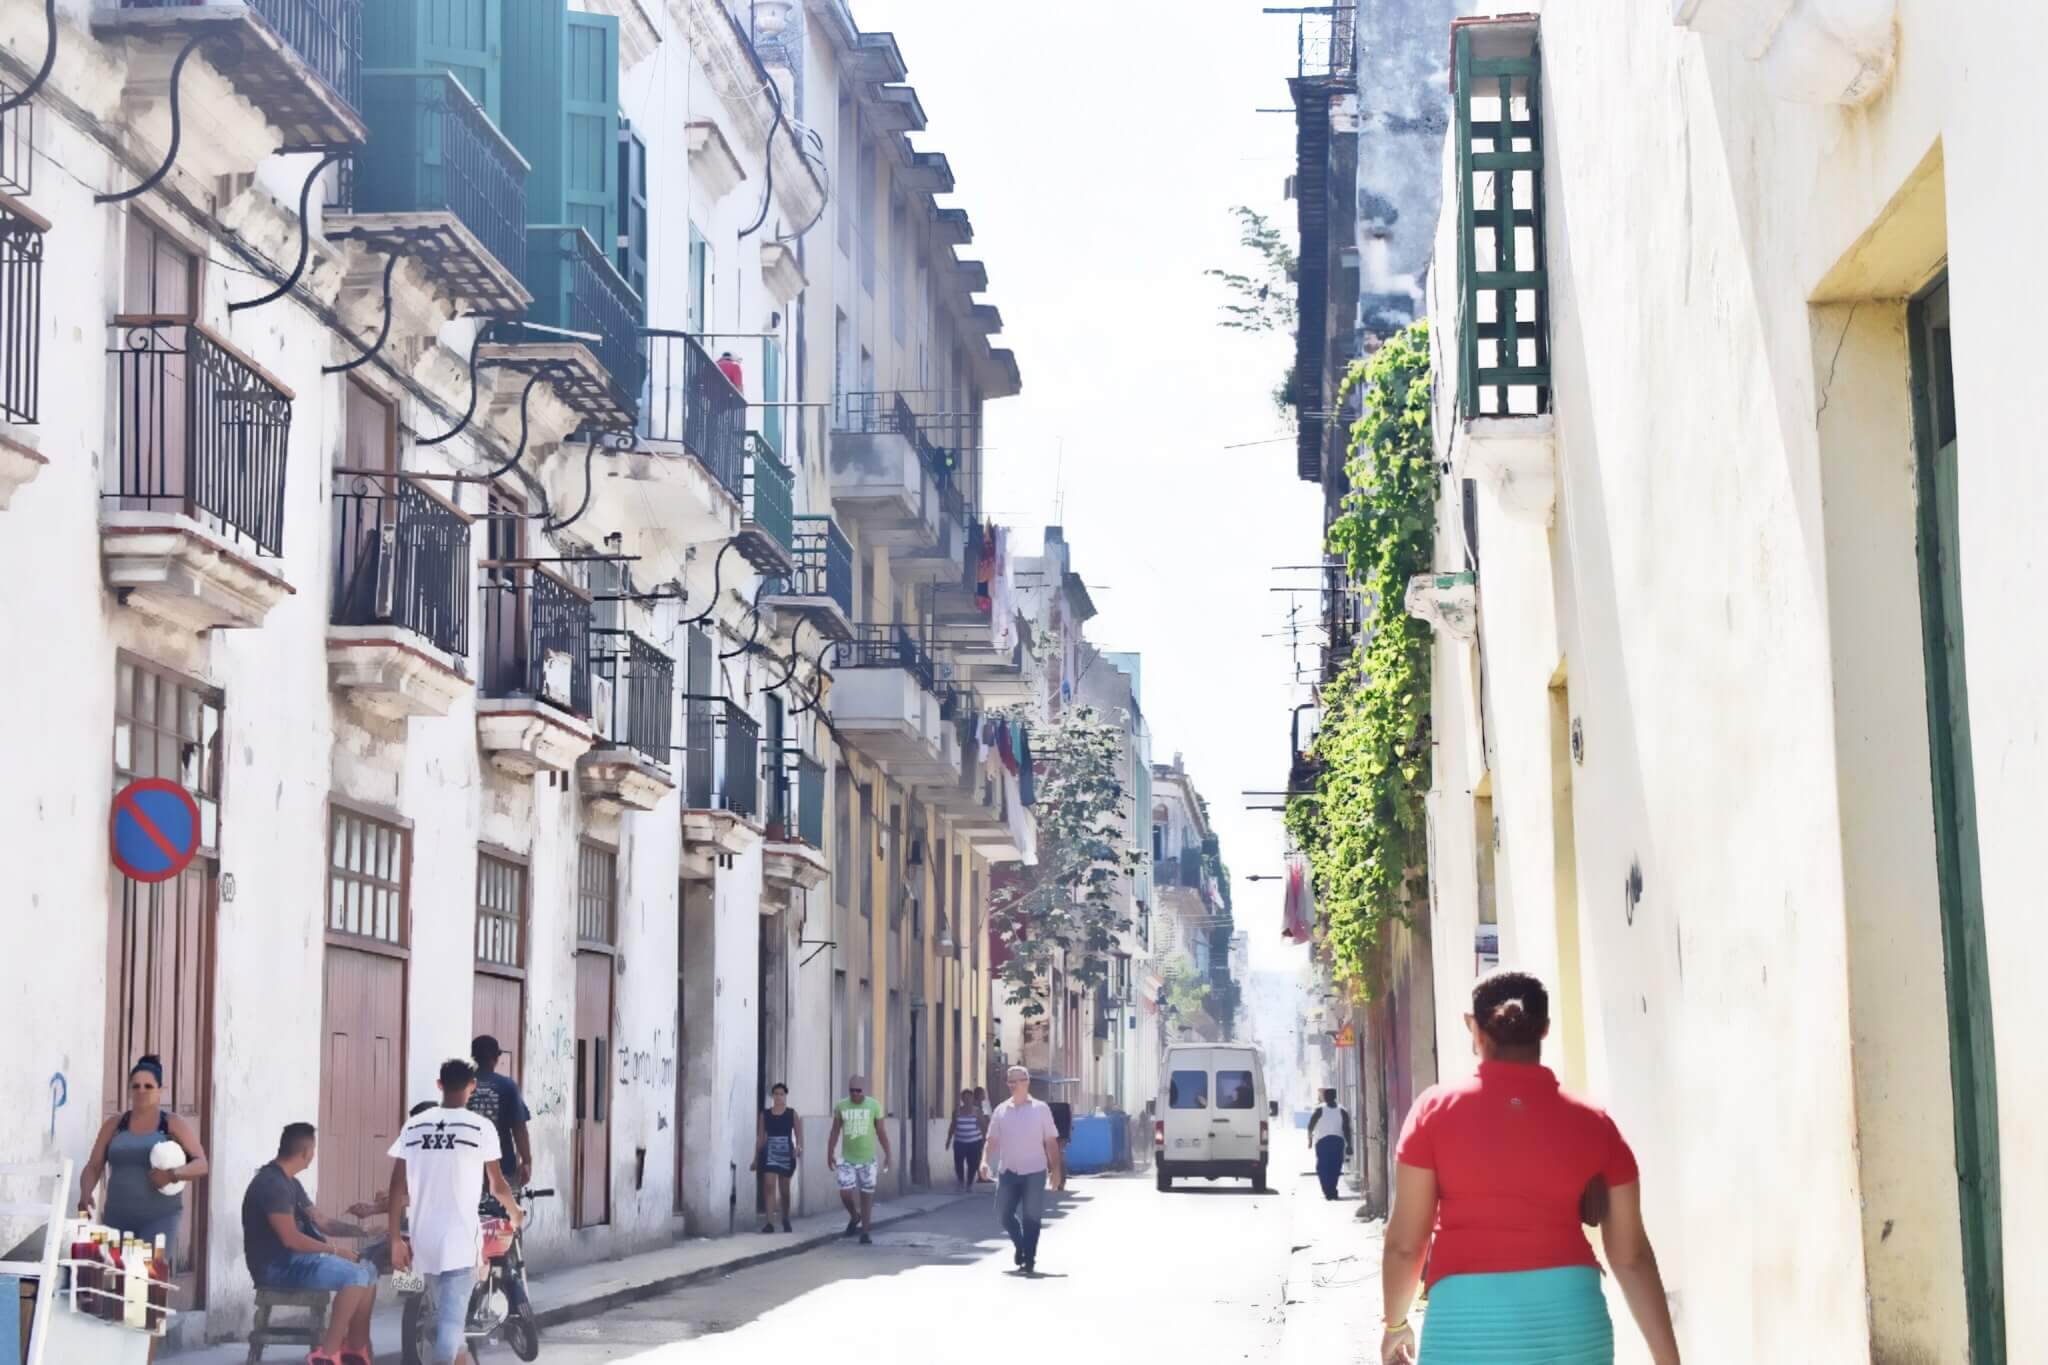 A woman walking down the colorful streets of Havana Vieja (Old Havana). This area is so charming!